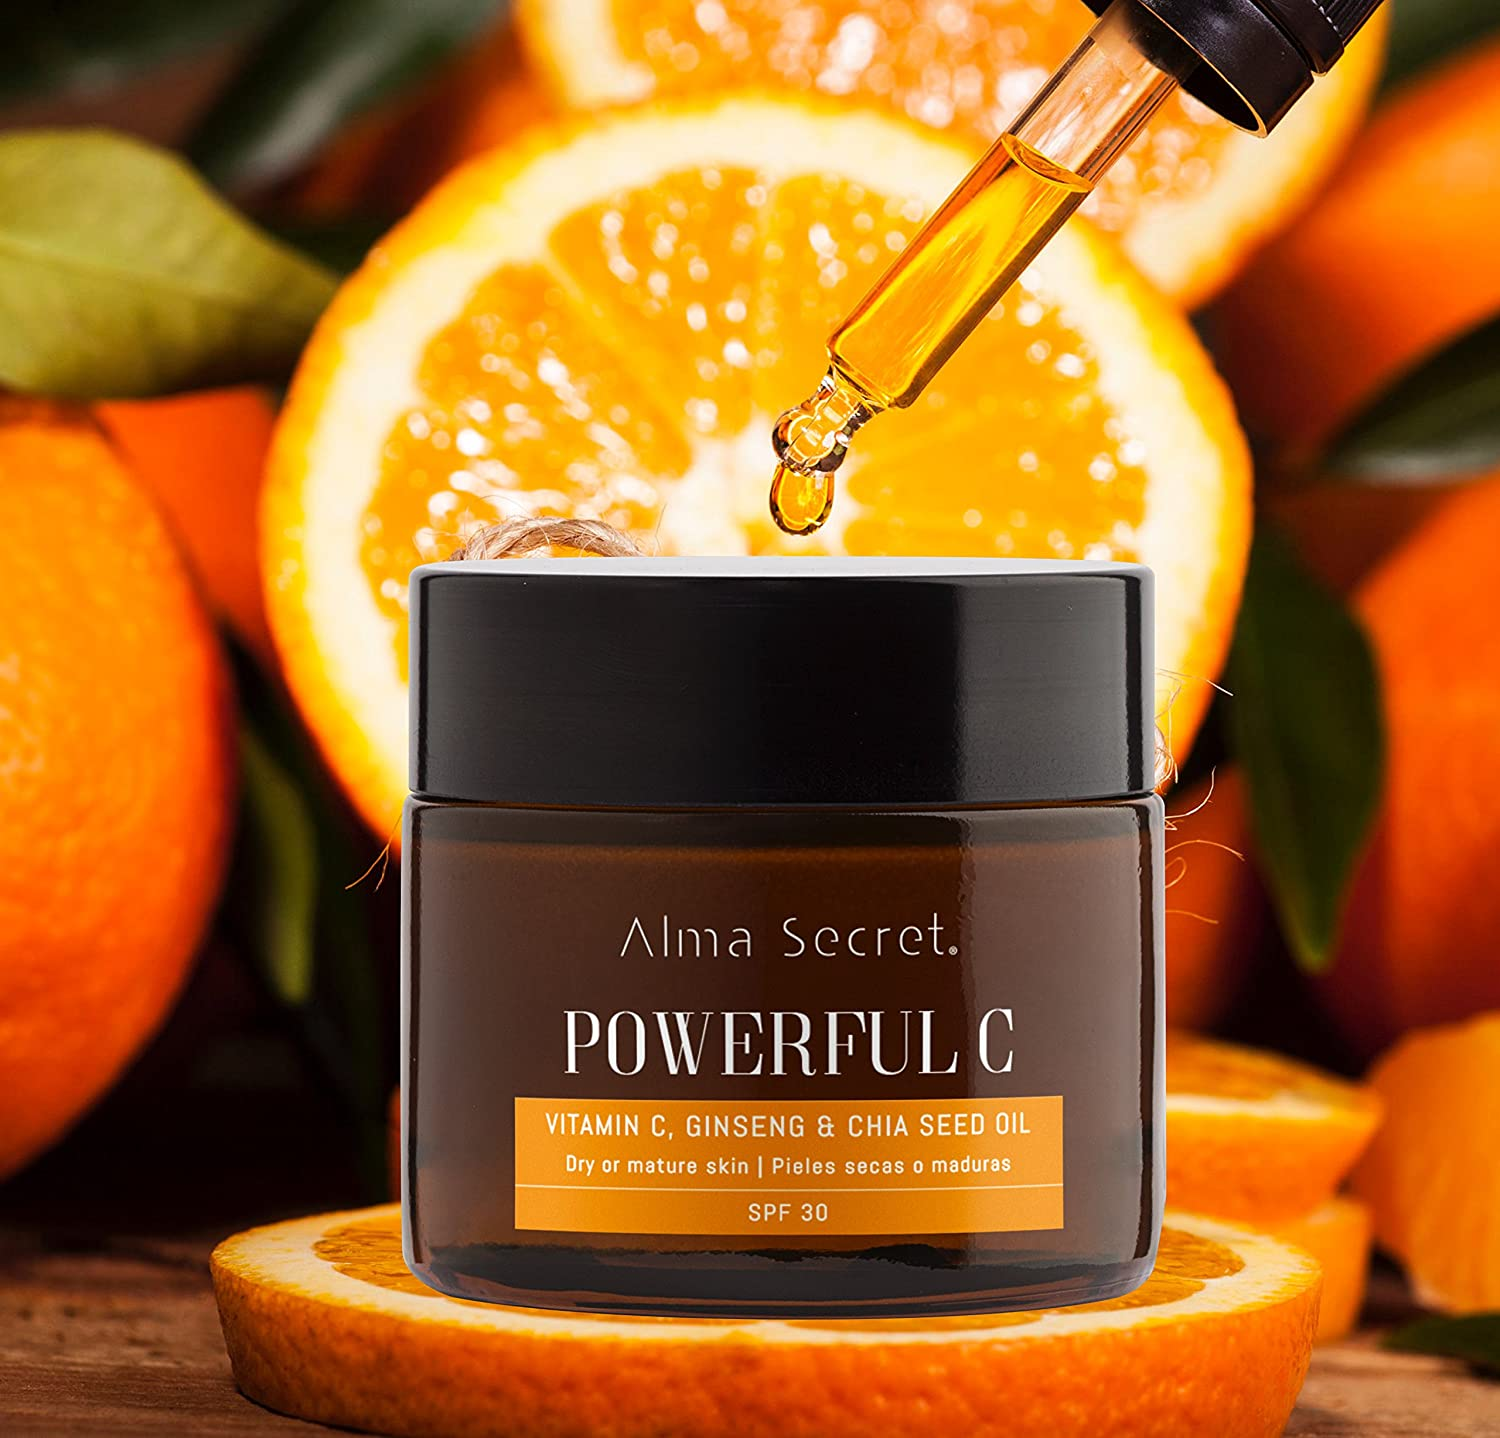 Alma Secret POWERFUL C Crema Iluminadora Antiedad con Vitamina C, Ginseng & Chía. SPF 30-50 ml